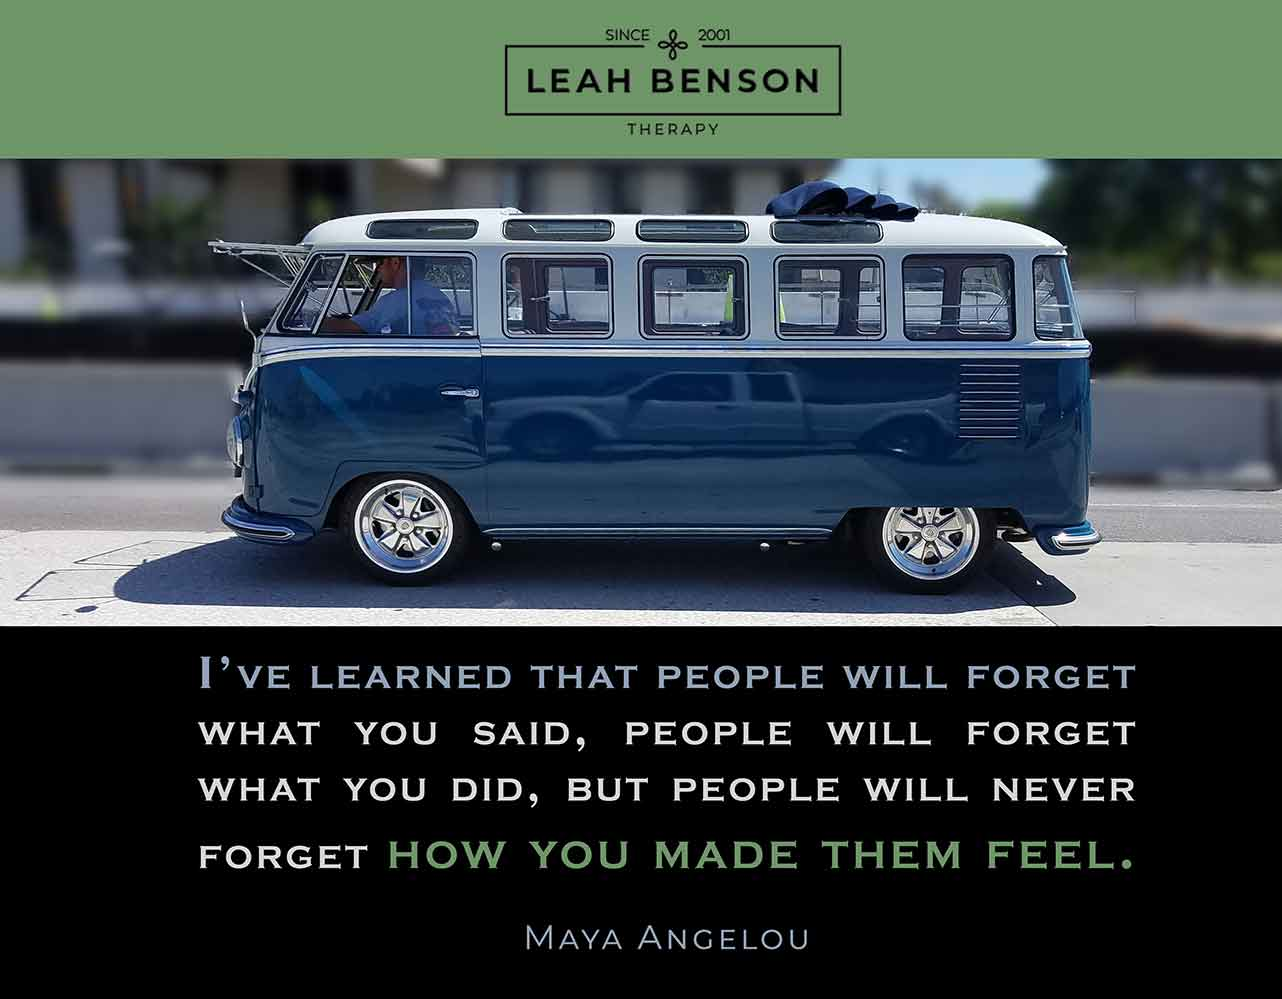 """""""I've learned that people will forget what you said, people will forget what you did, but people will never forget how you made them feel."""" Quote by Maya Angelou. Photo of custom blue VW van."""